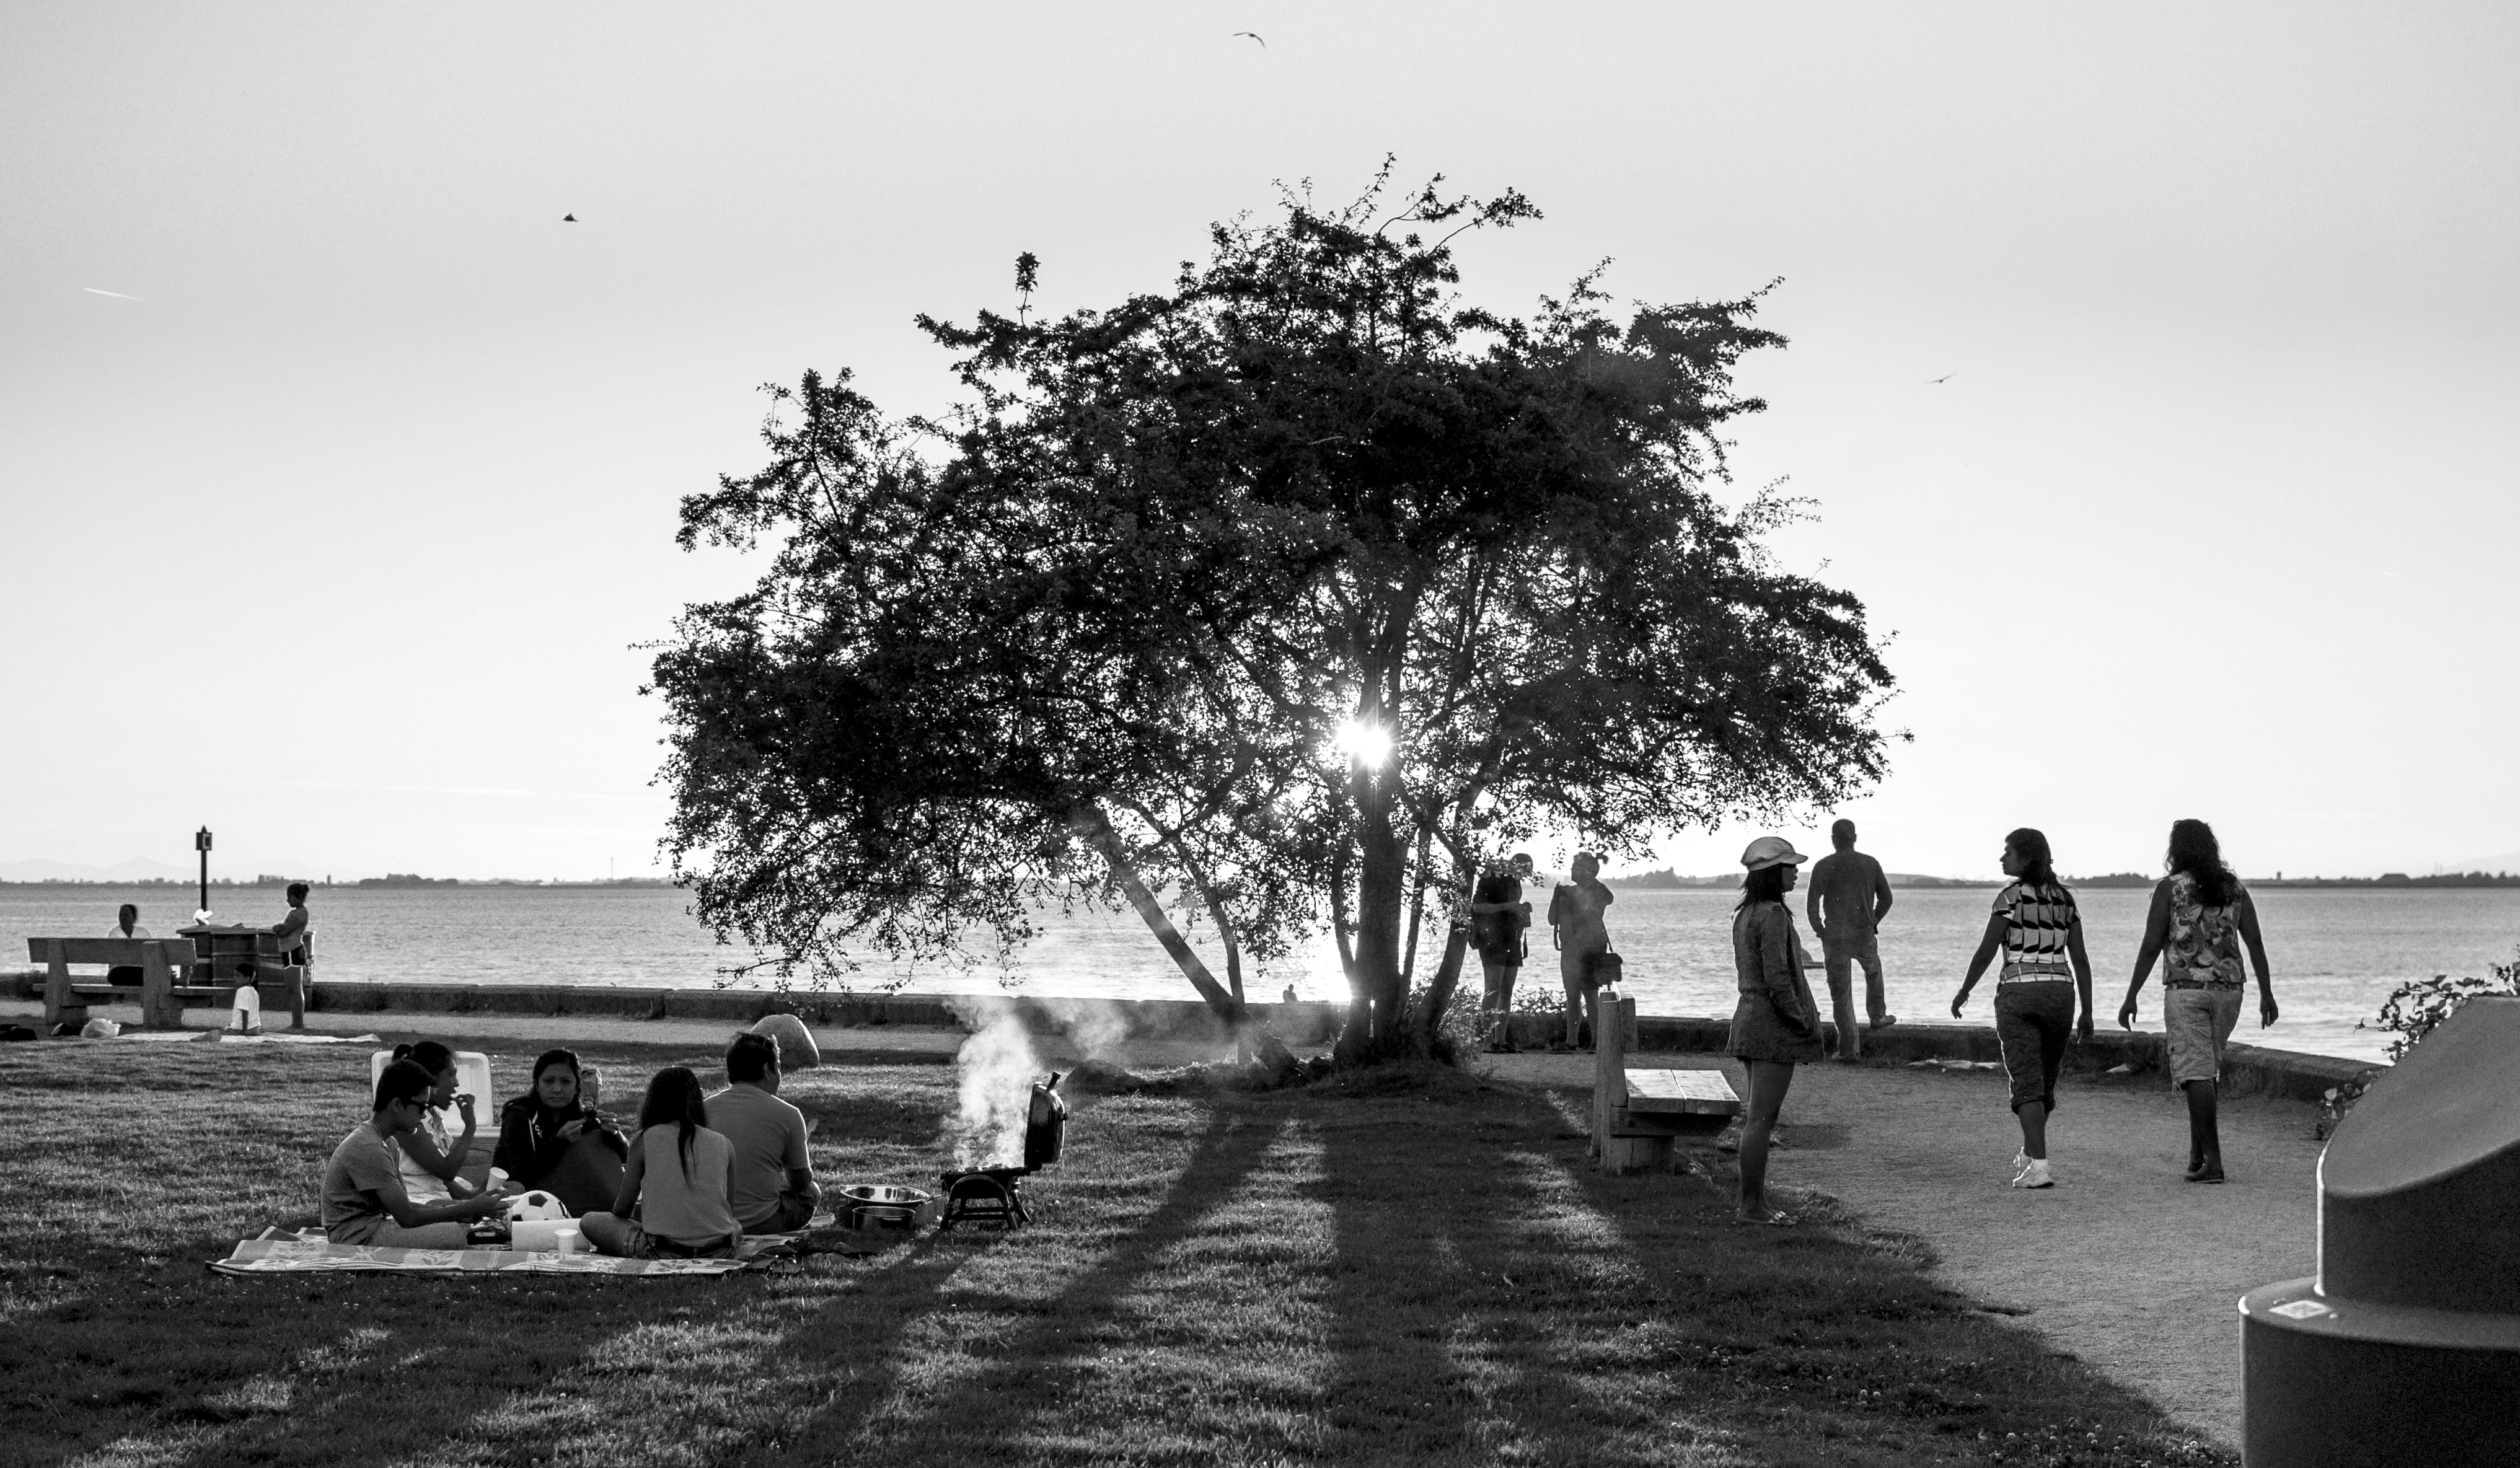 greyscale photography of people and tree